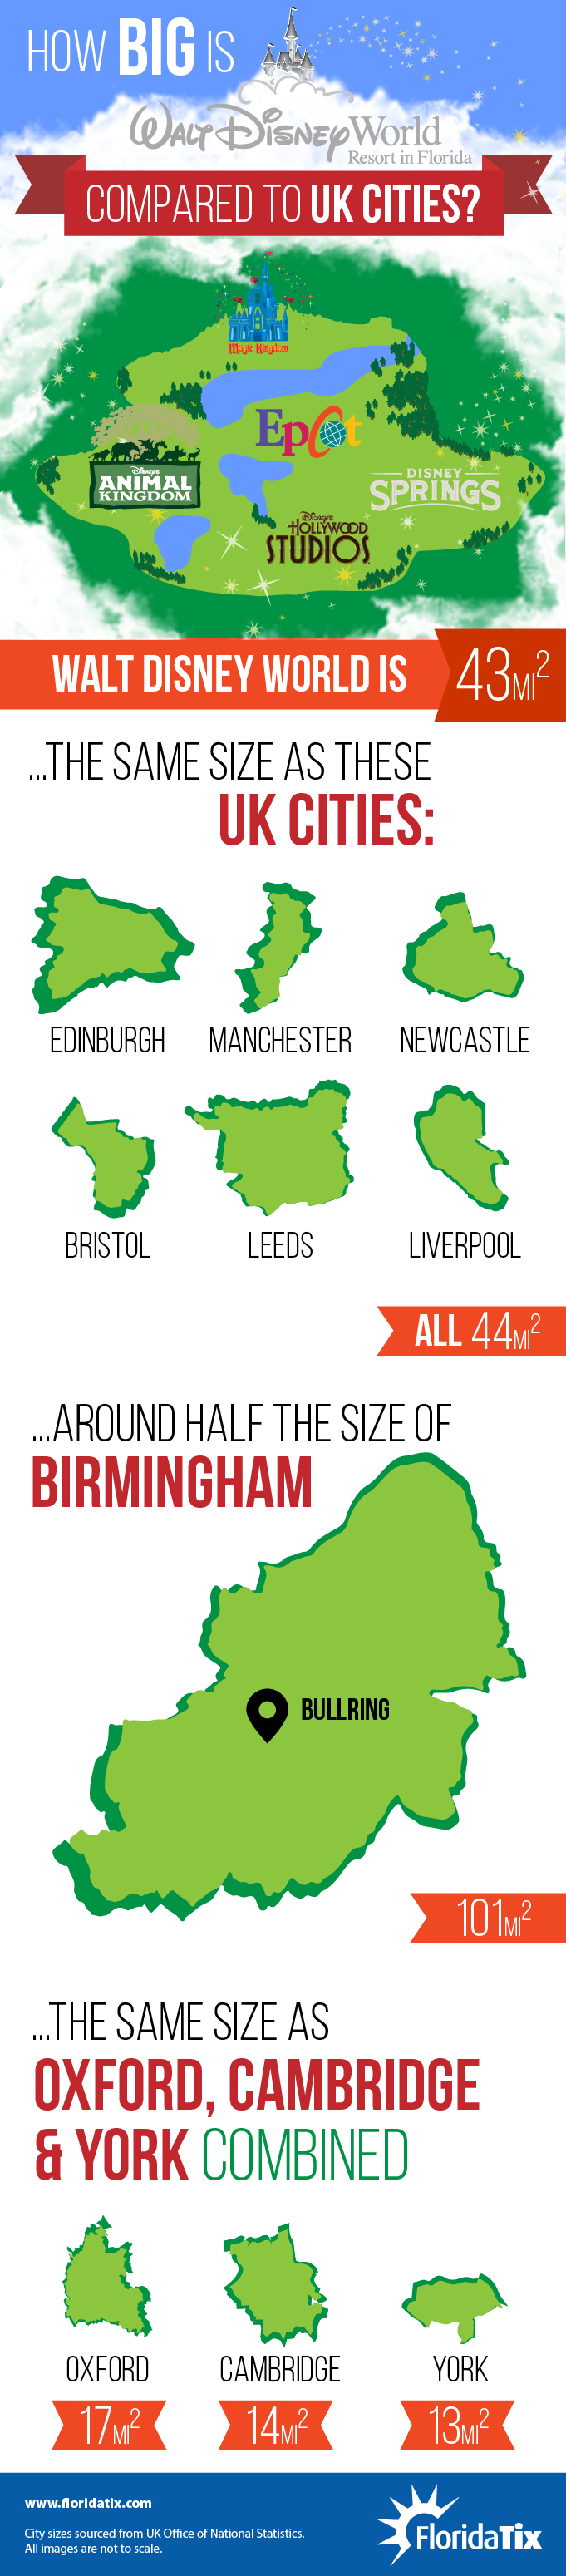 How Big Is Disney World Compared To Uk Cities Disney World Disney World Florida Walt Disney World